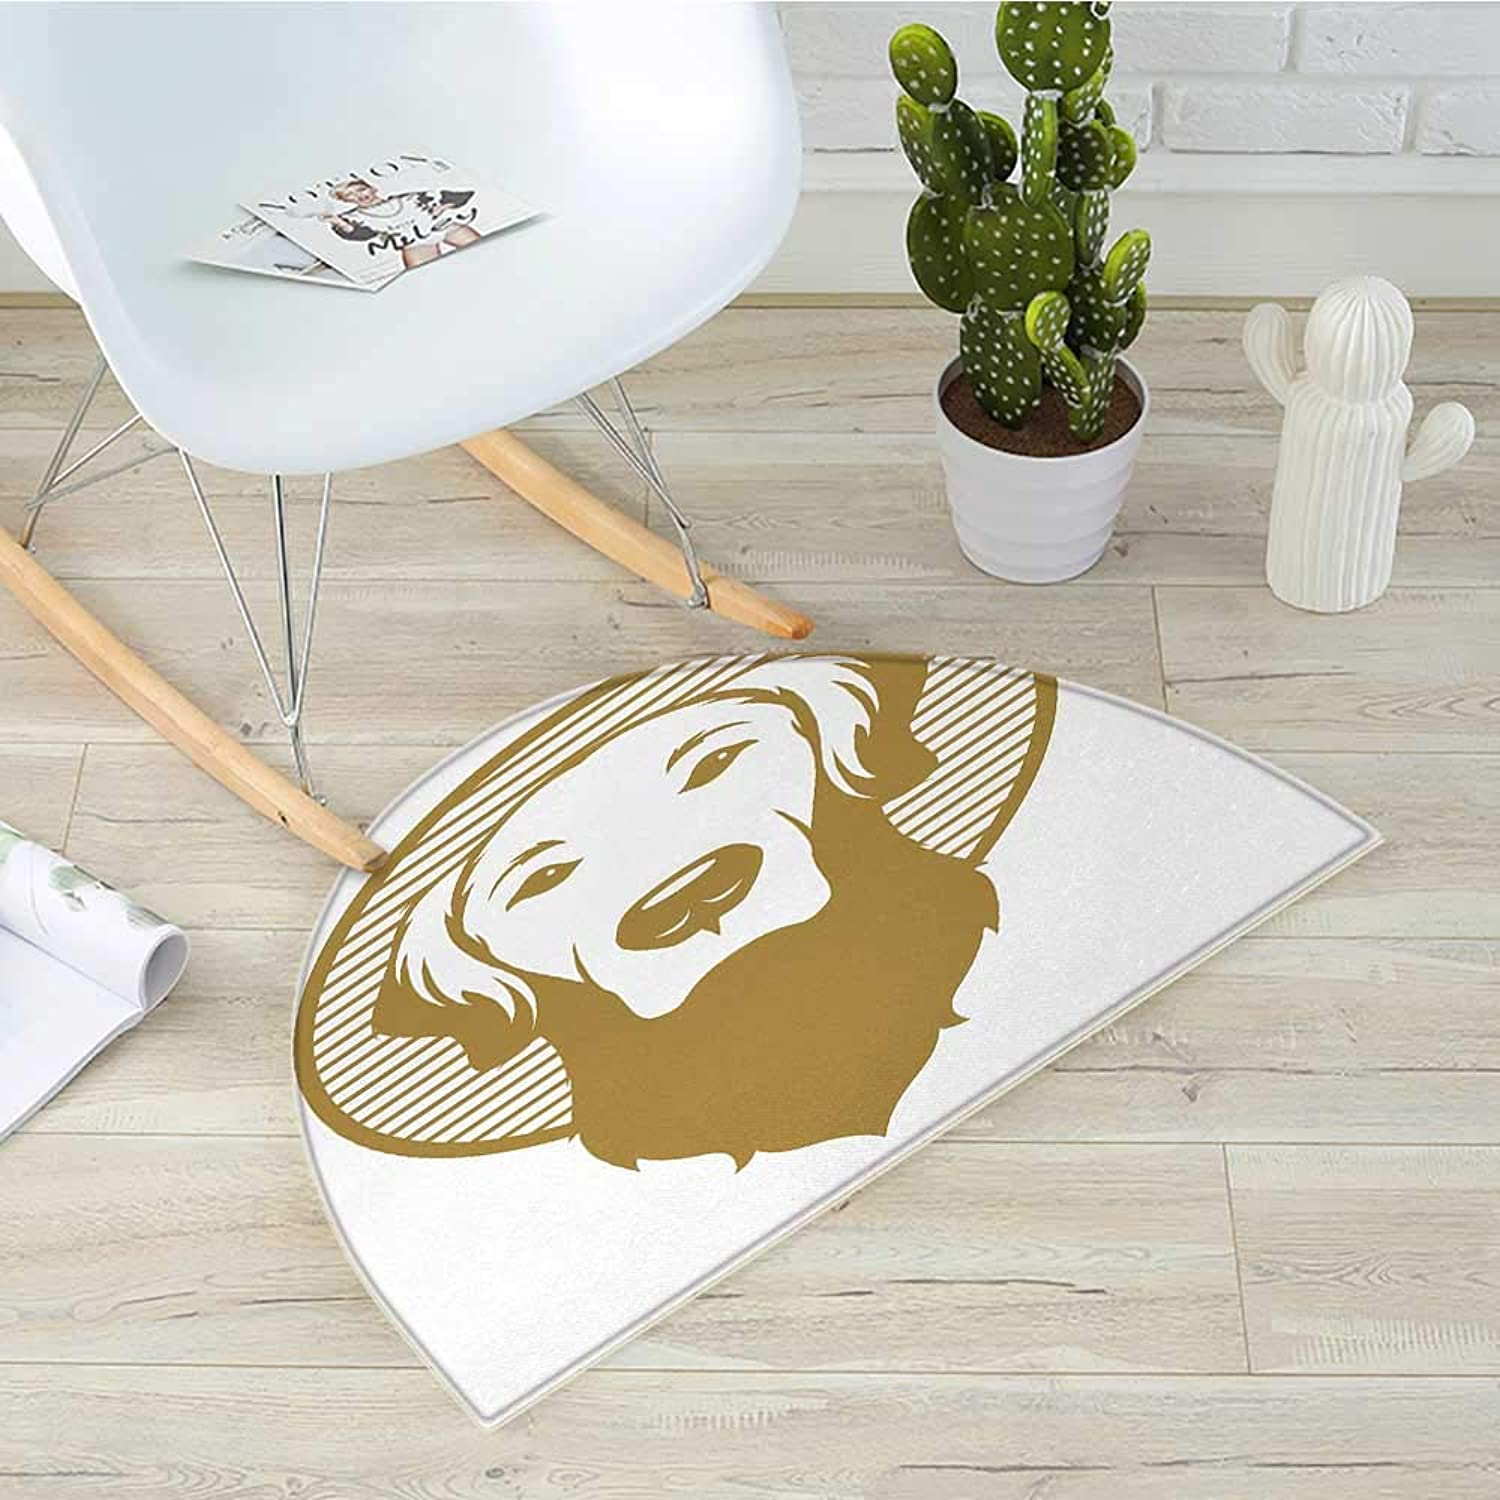 golden Retriever Semicircle Doormat Vintage Styled Illustration of Dog Portrait on a Striped Circle Halfmoon doormats H 35.4  xD 53.1  Pale Coffee and White